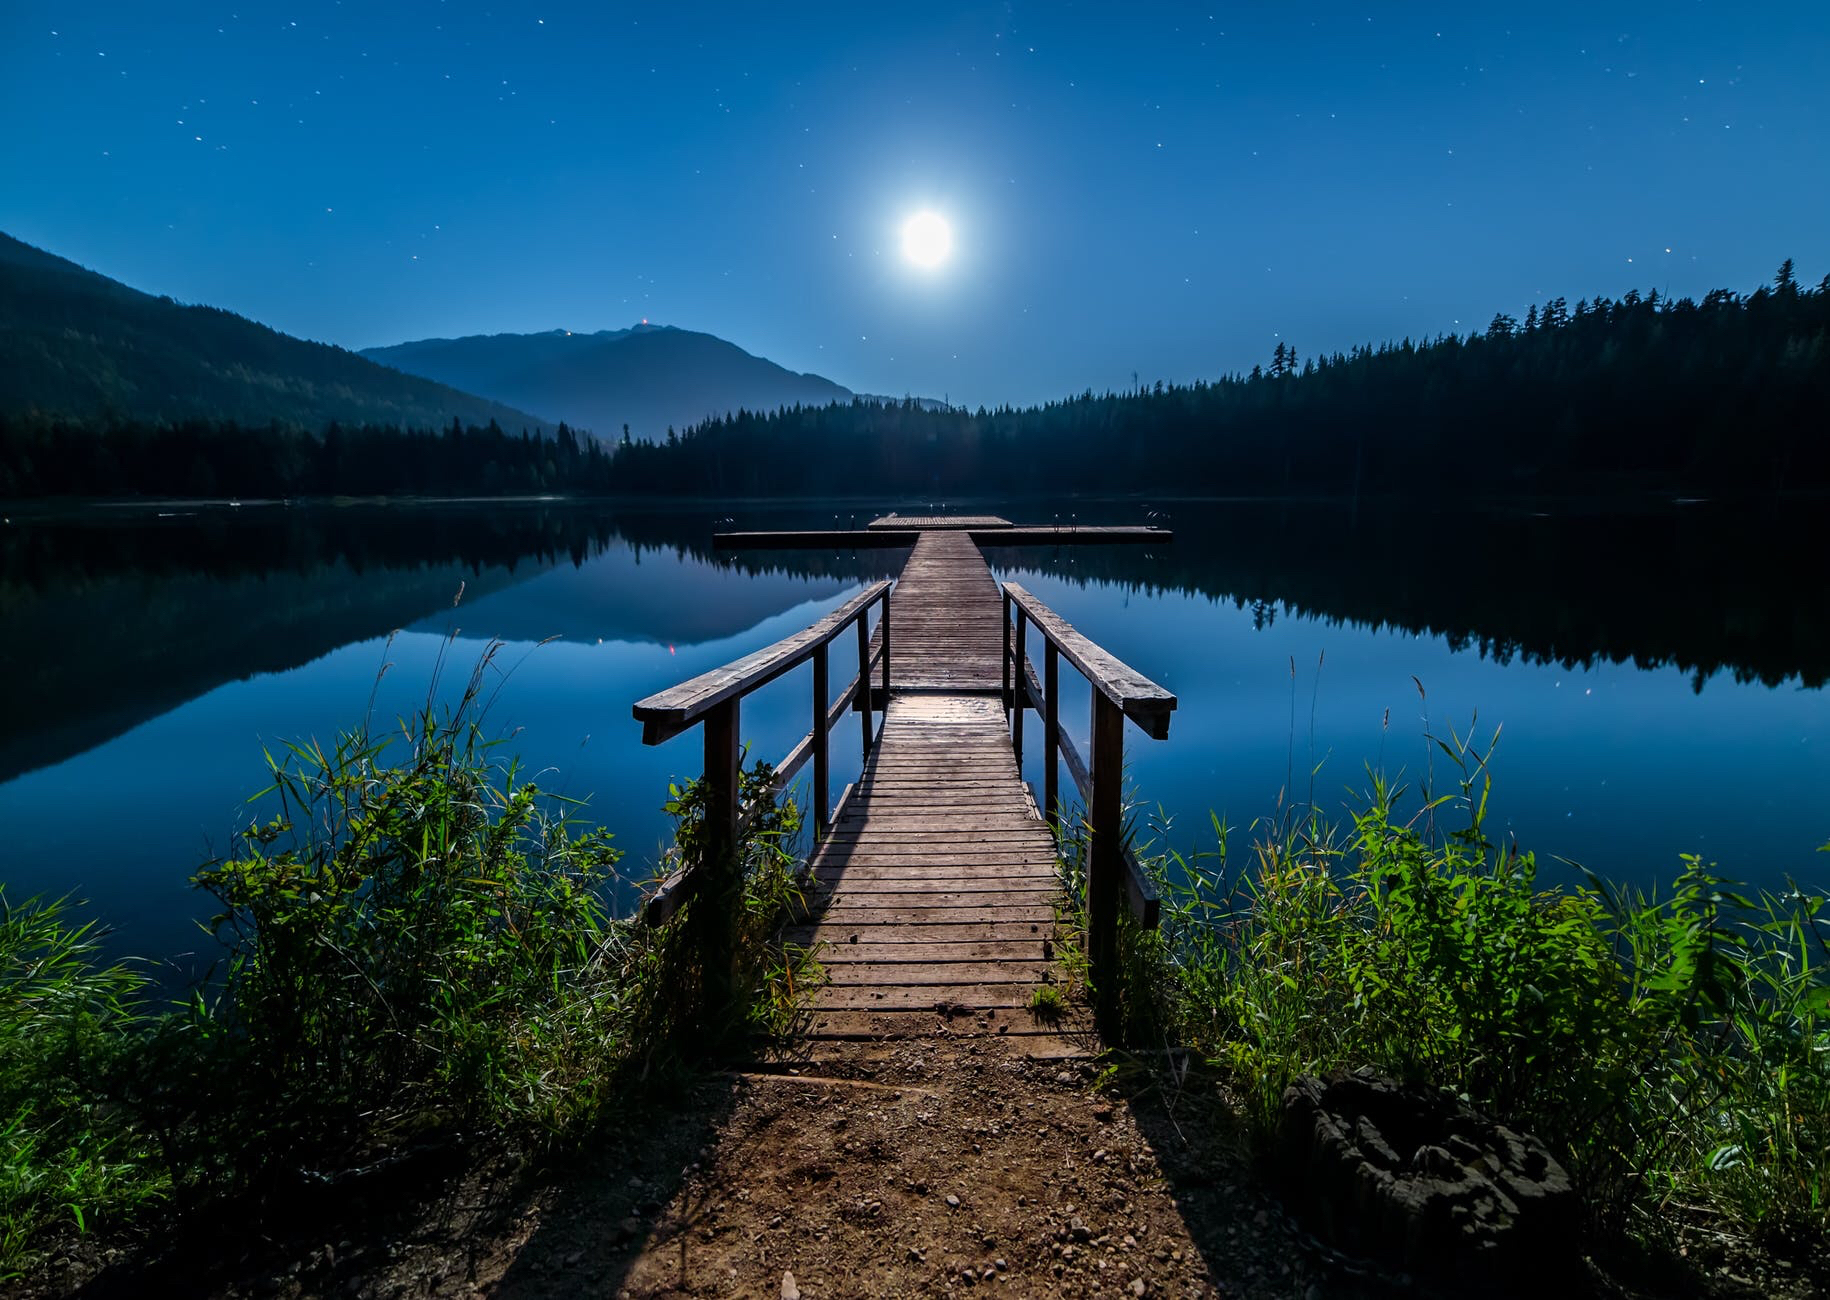 Wooden dock on a lake in the moonlight